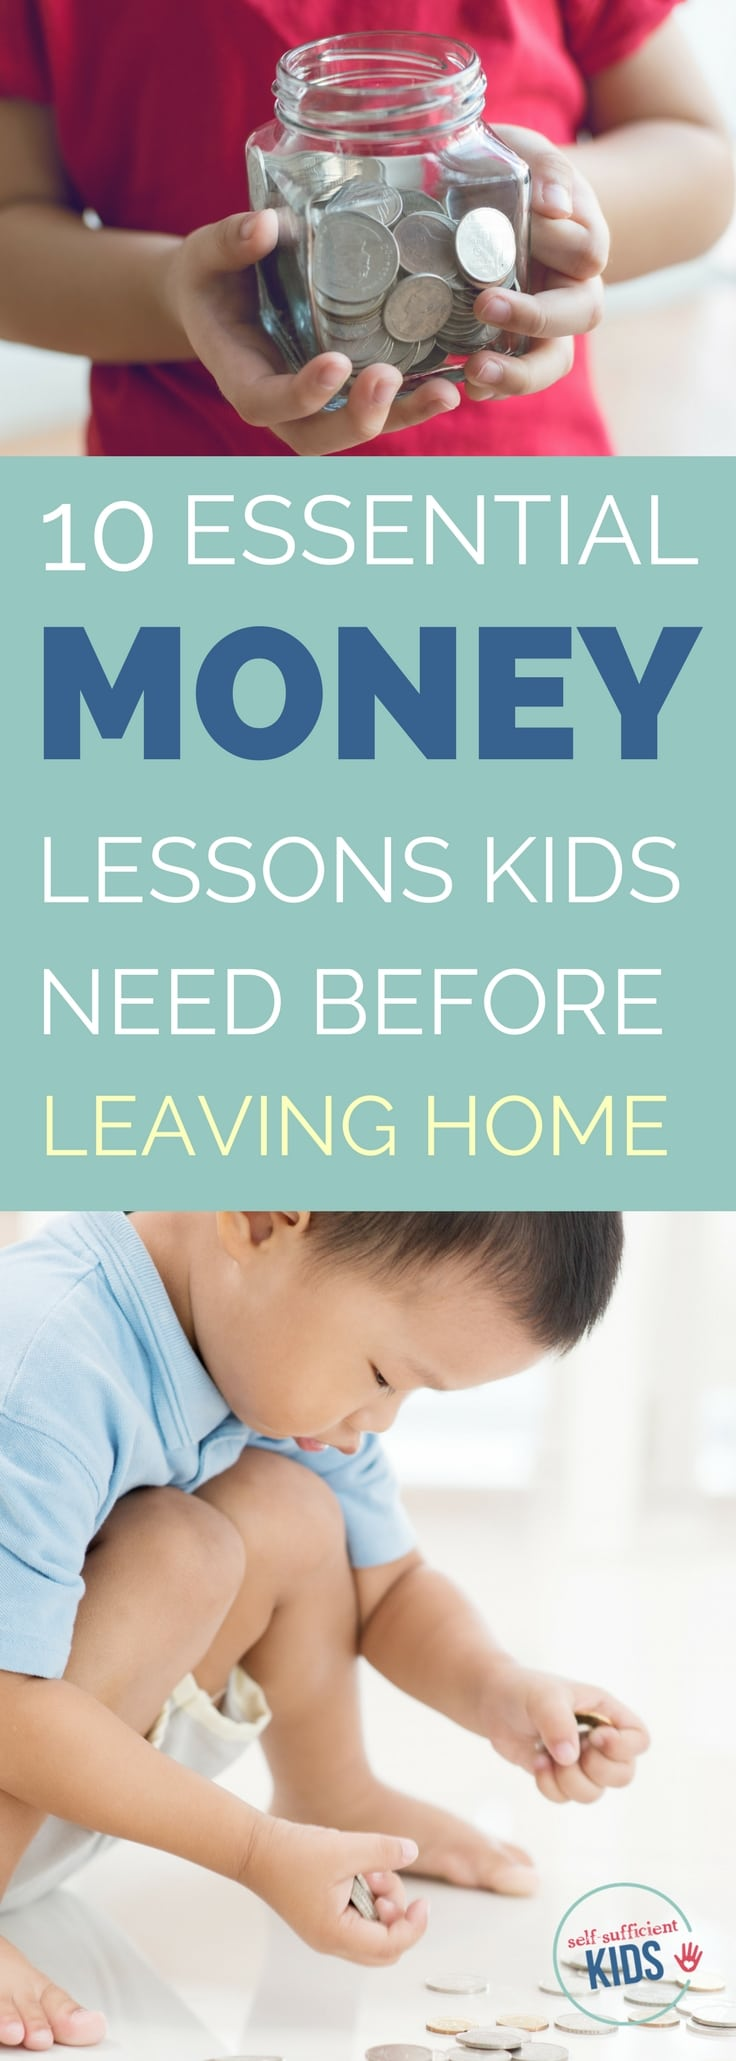 Which money lessons did you miss as a child? This guide covers everything children need to know about money. Make sure your kids don't miss out on these 10 important lessons.